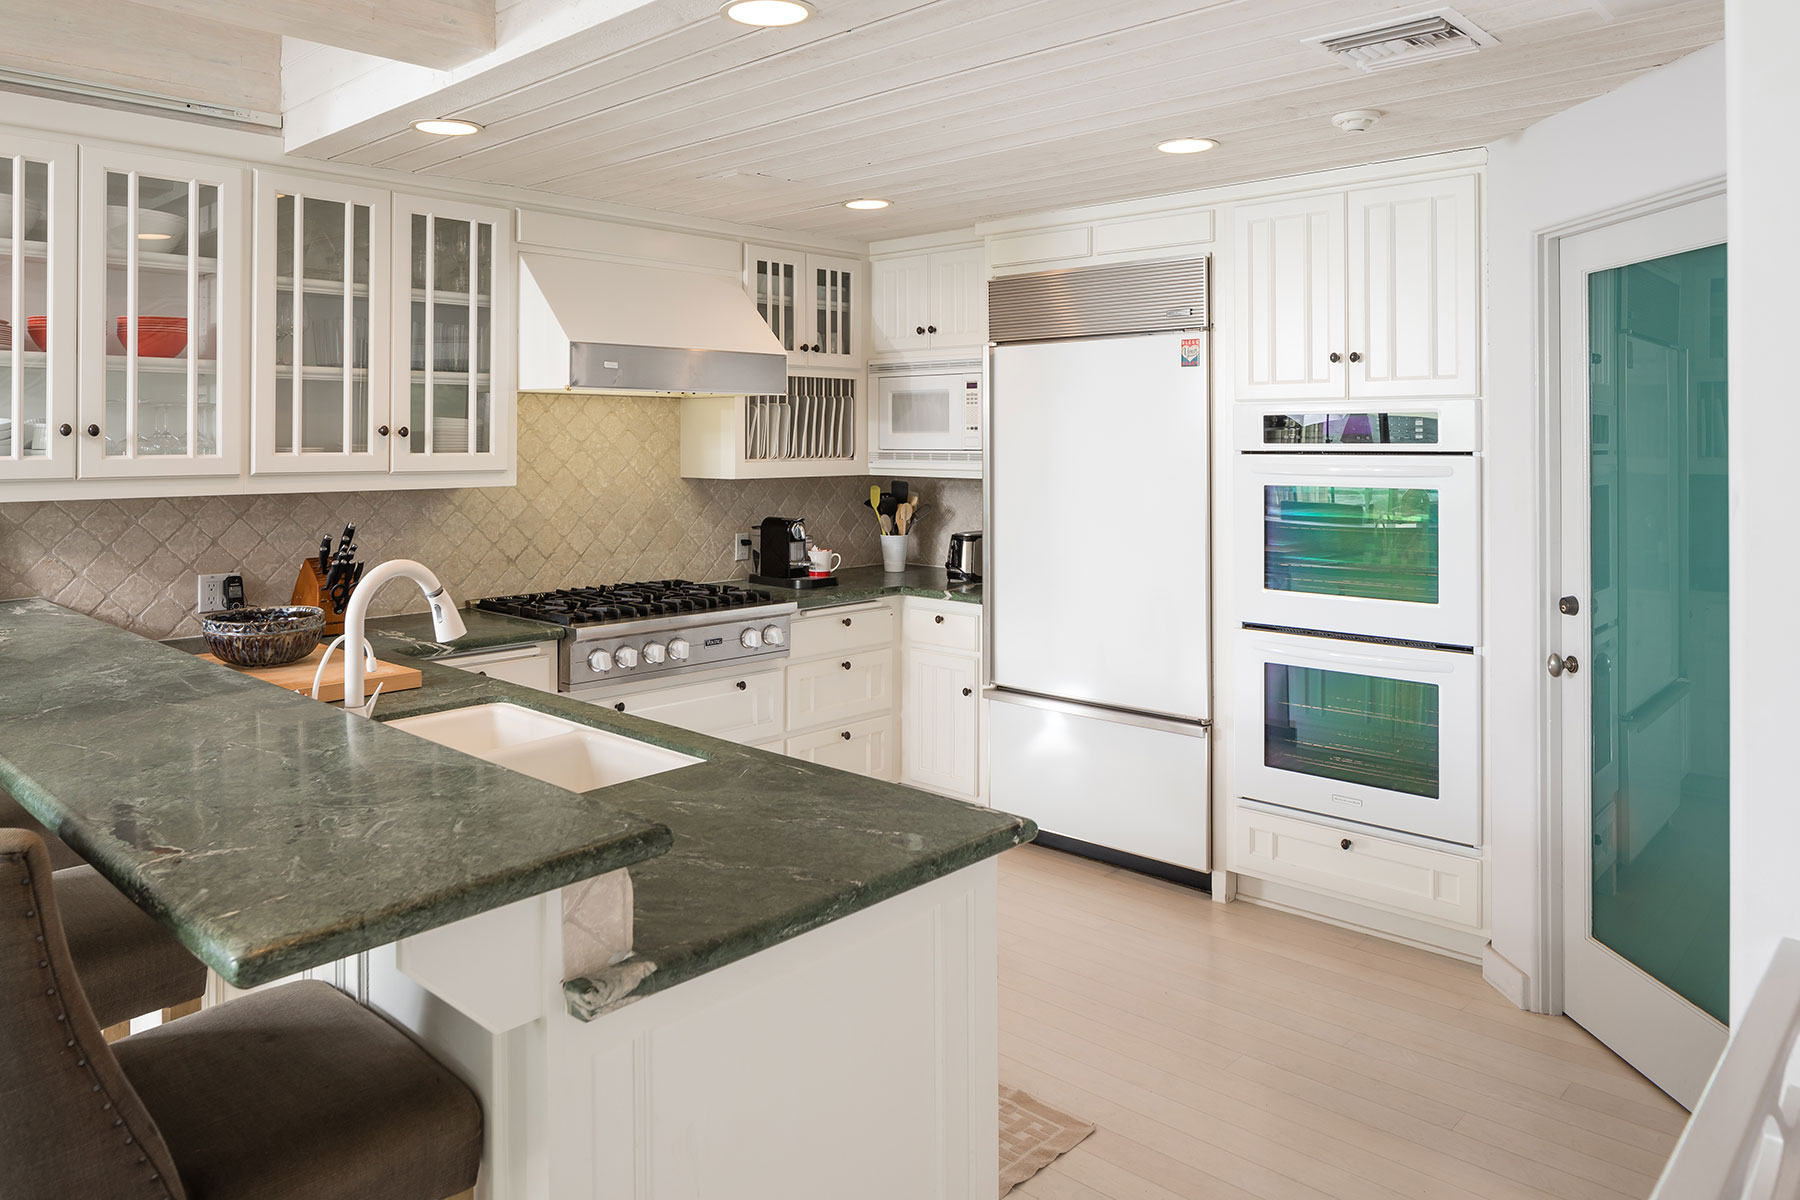 Additional photo for property listing at 20906 Pacific Coast Highway 20906 Pacific Coast Highway Malibu, California 90265 United States